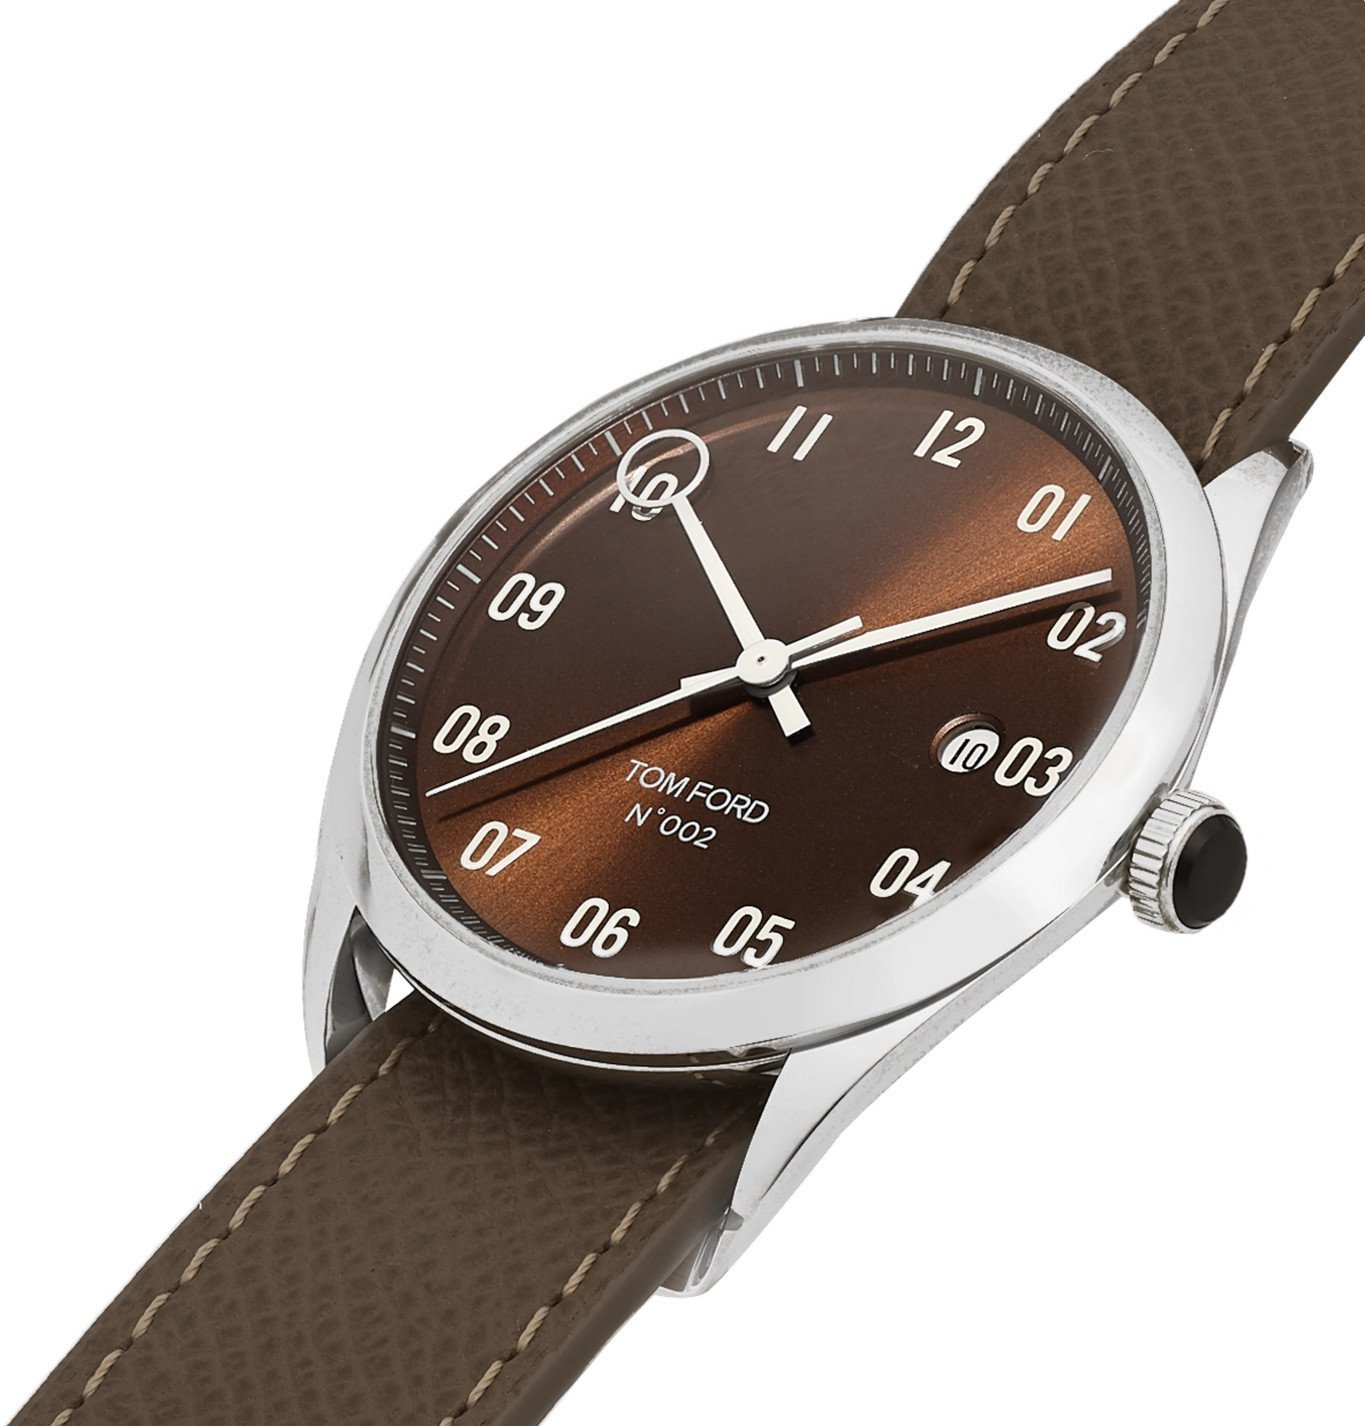 Tom Ford Timepieces - 002 40mm Stainless Steel and Pebble-Grain Leather Watch - Brown